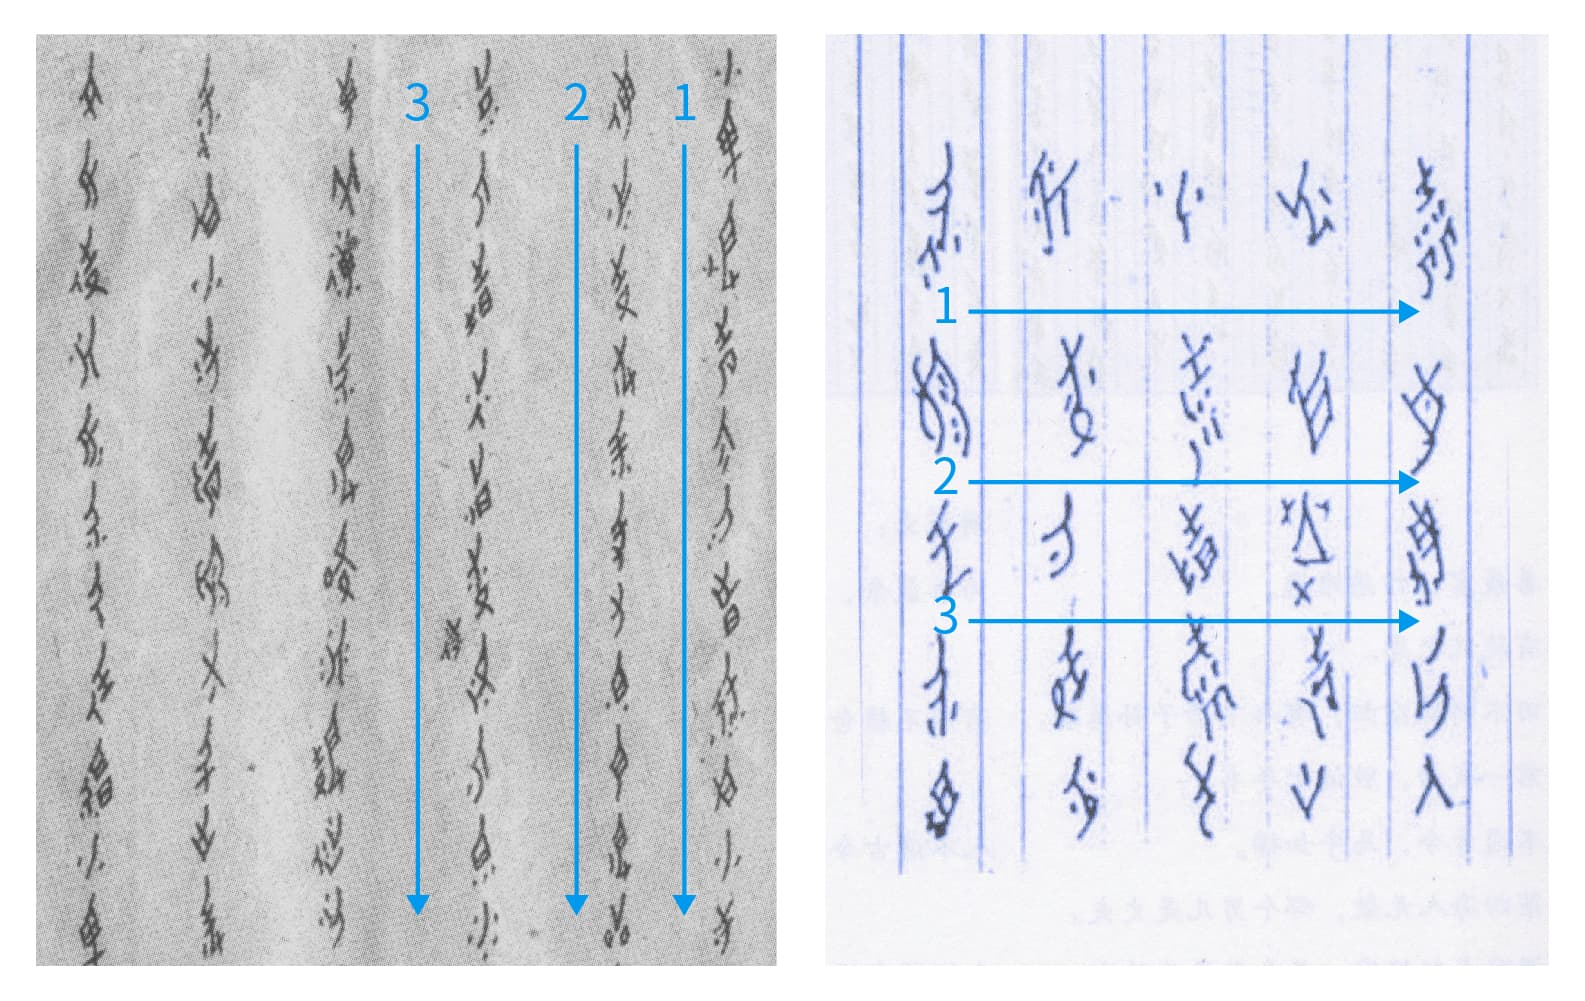 Nüshu's possible writing directions: from top to bottom or from left to right